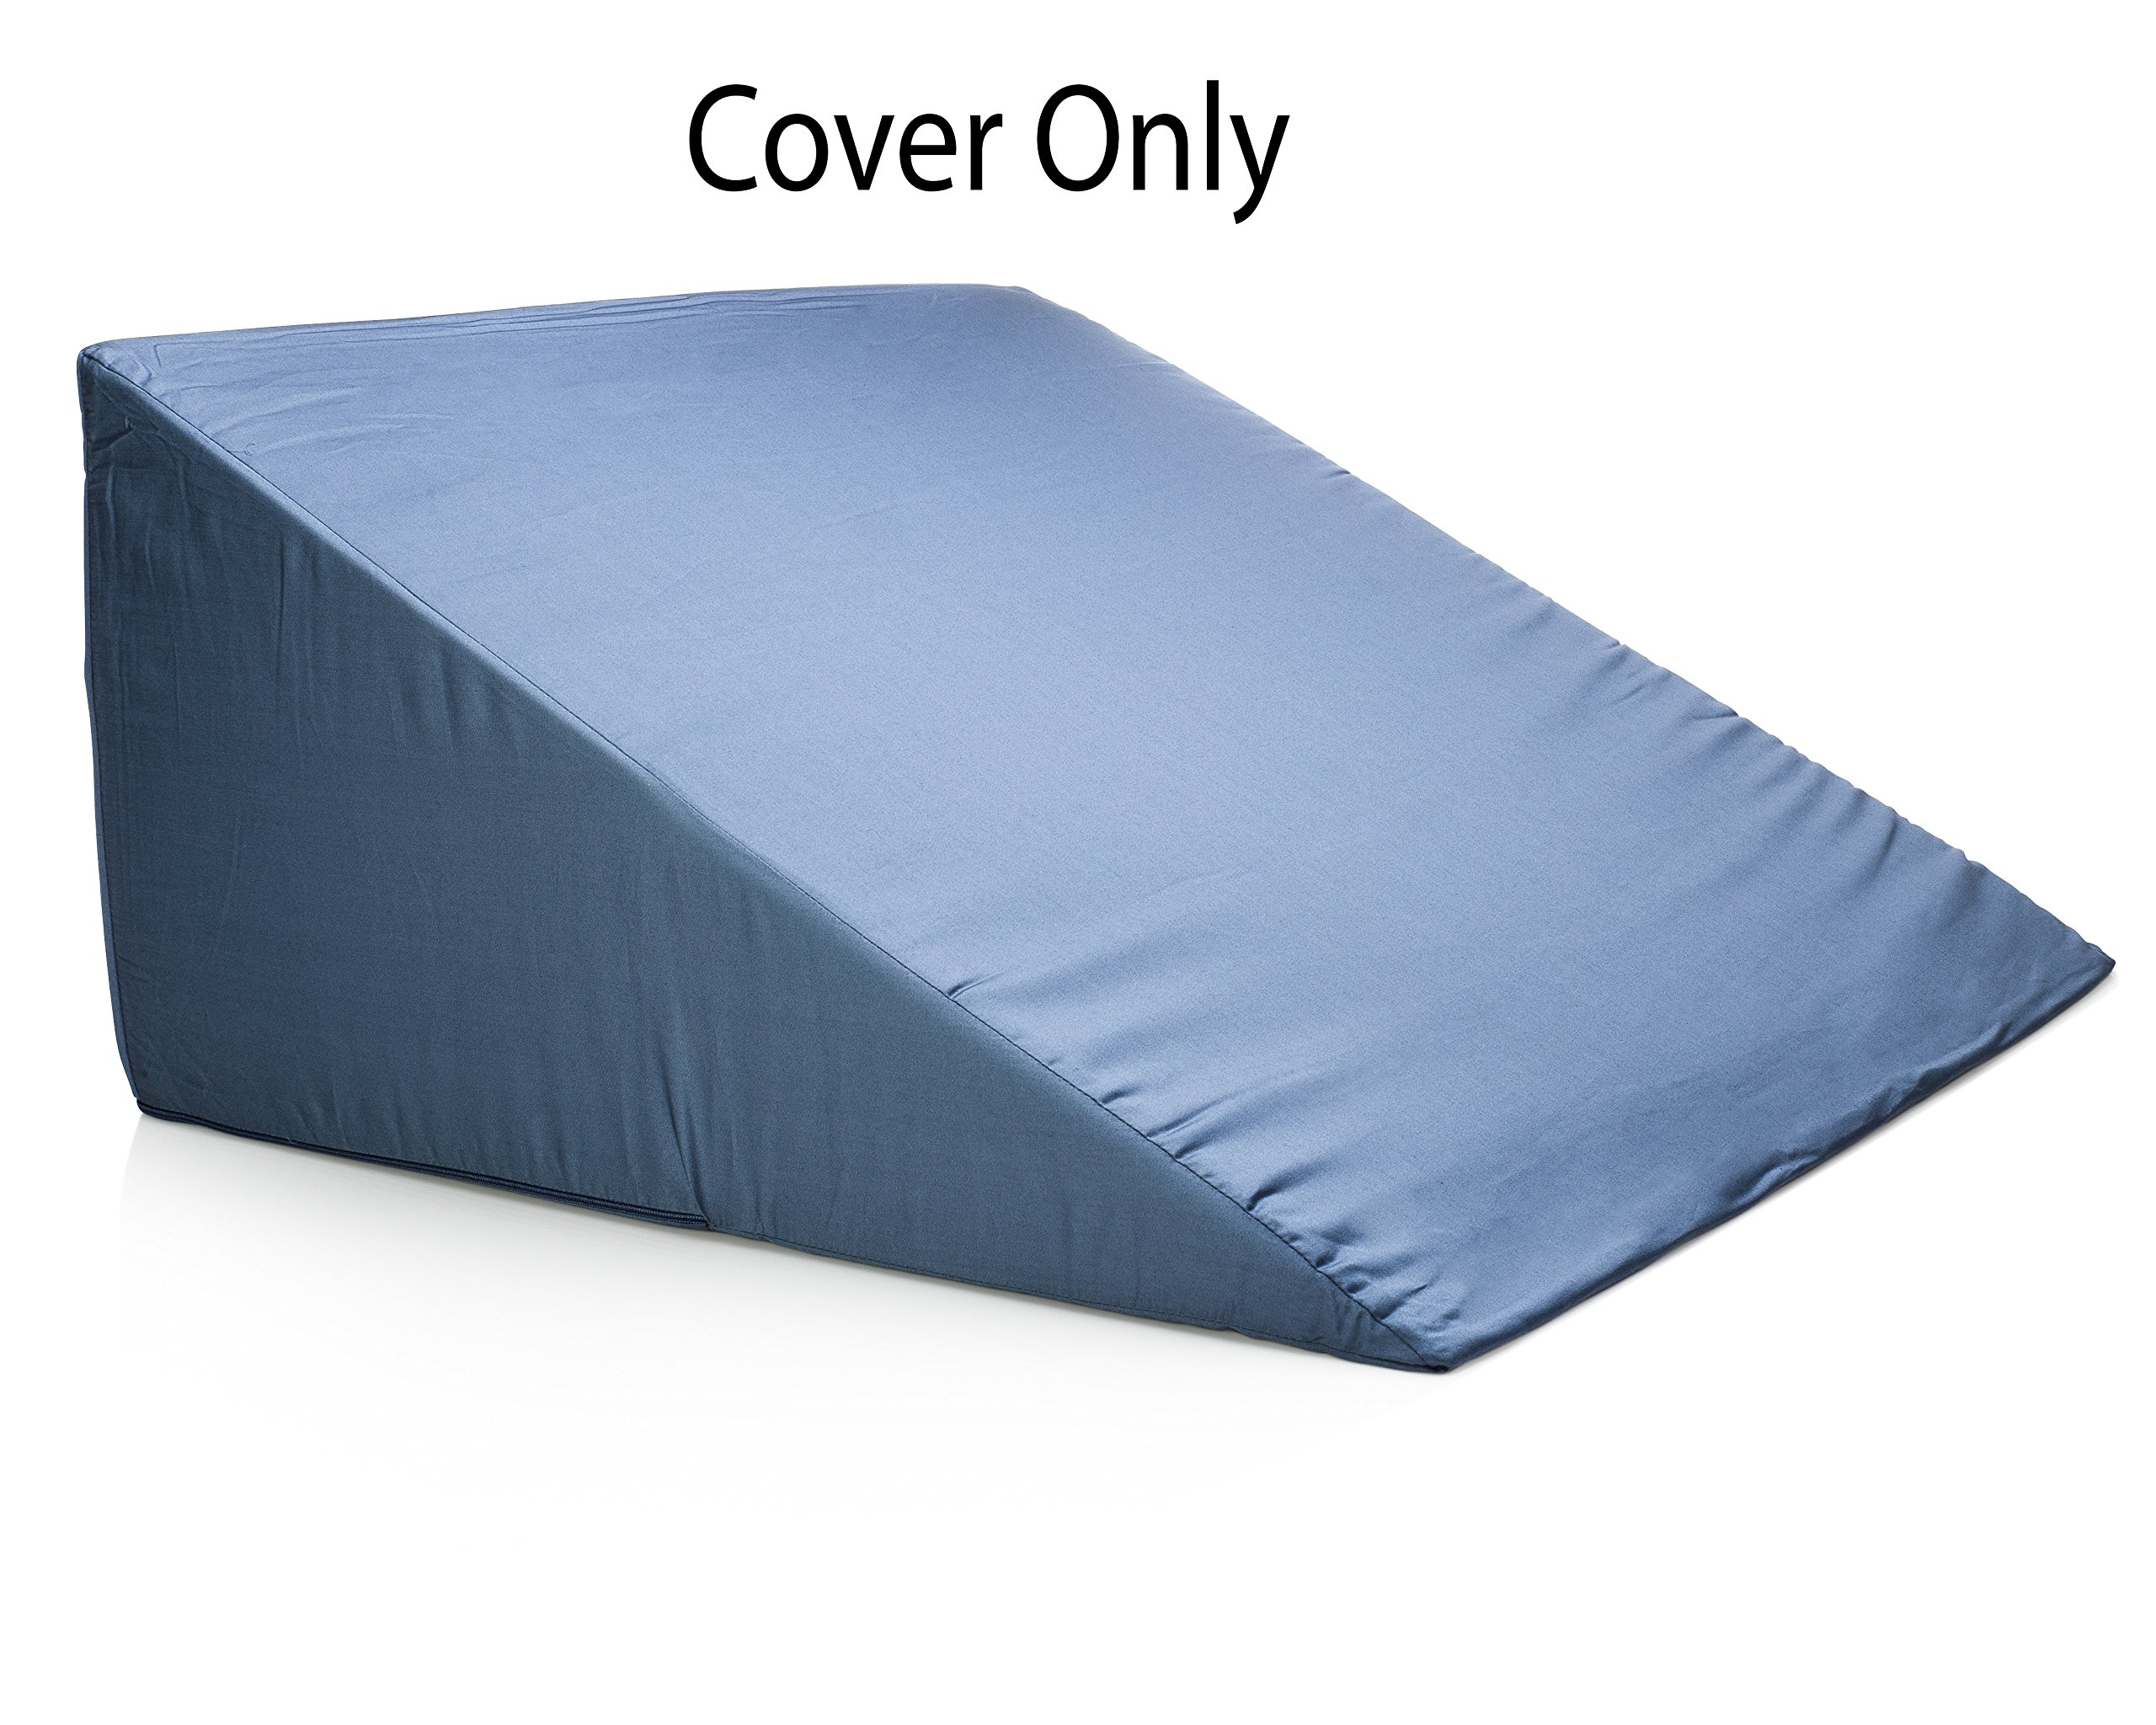 Bed Wedge Pillow Case - Cover 24x24x12 - Fits Most Full Size Sleep Wedges by Sleep Jockey